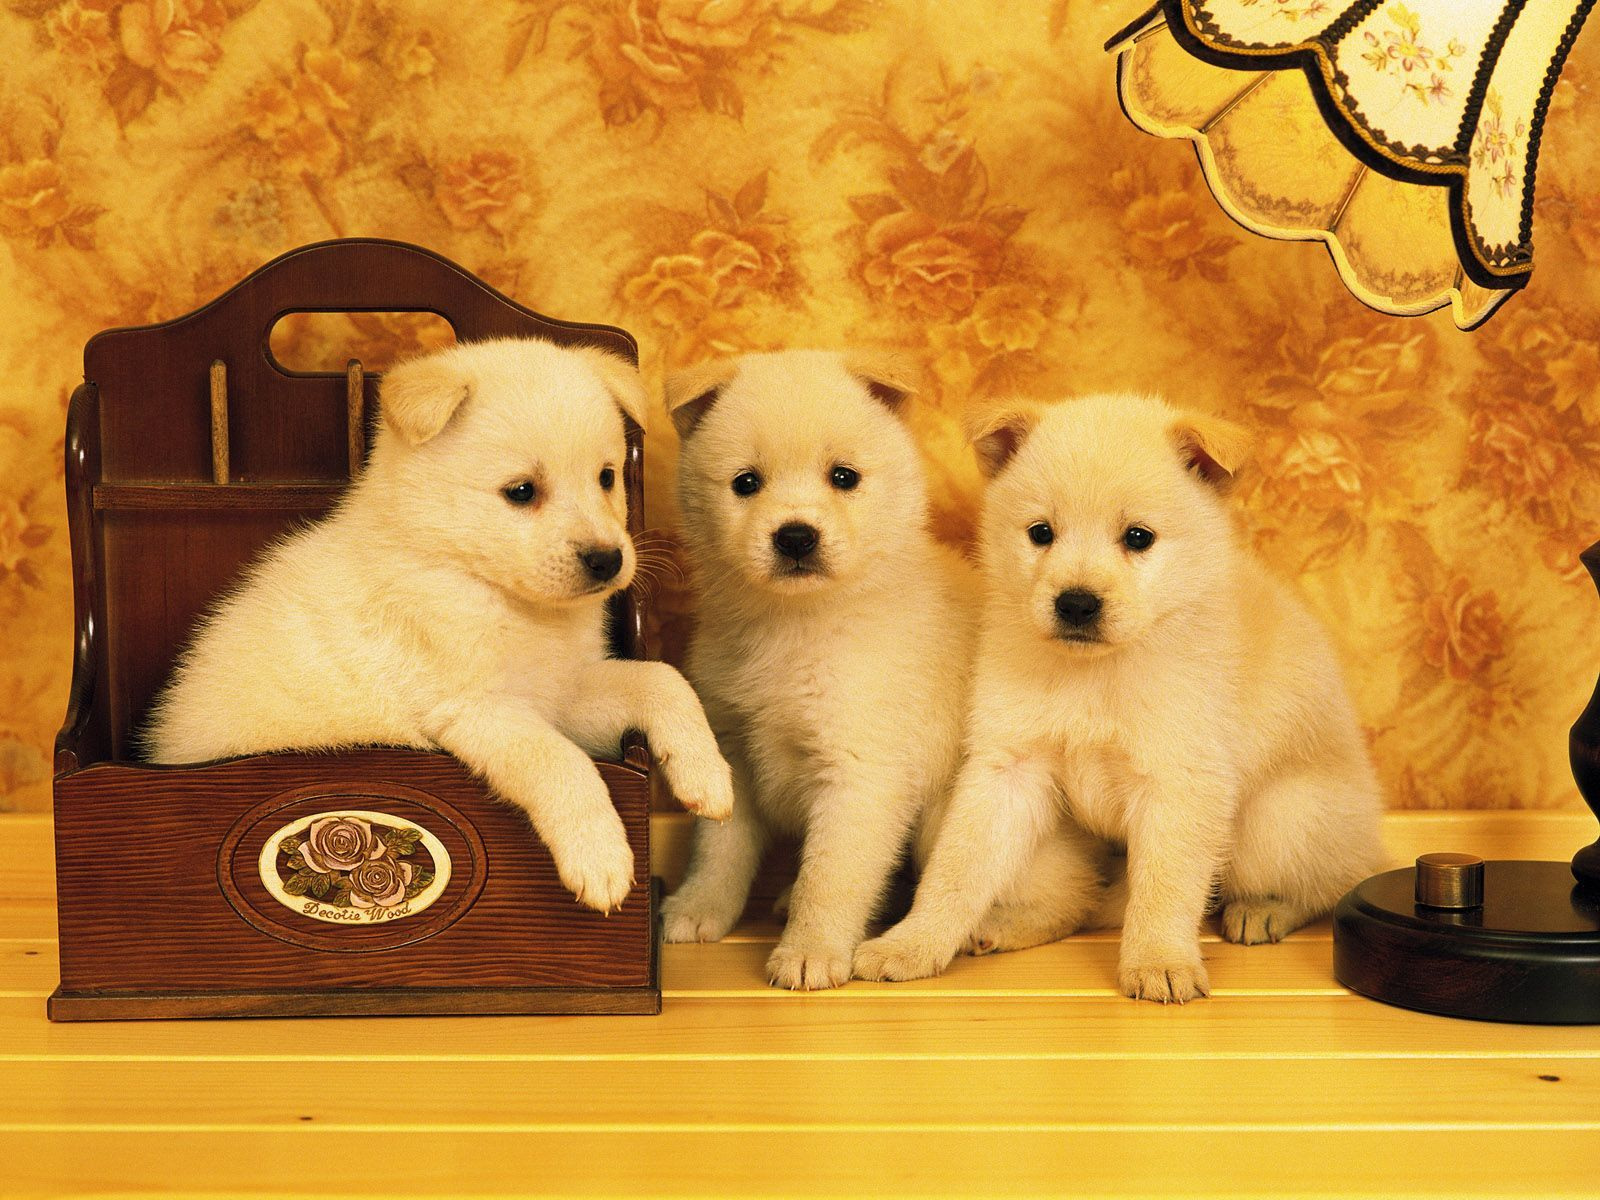 pictures of pets  cute animal pictures. Pet Animal Crafts for Kids.Images for small pet